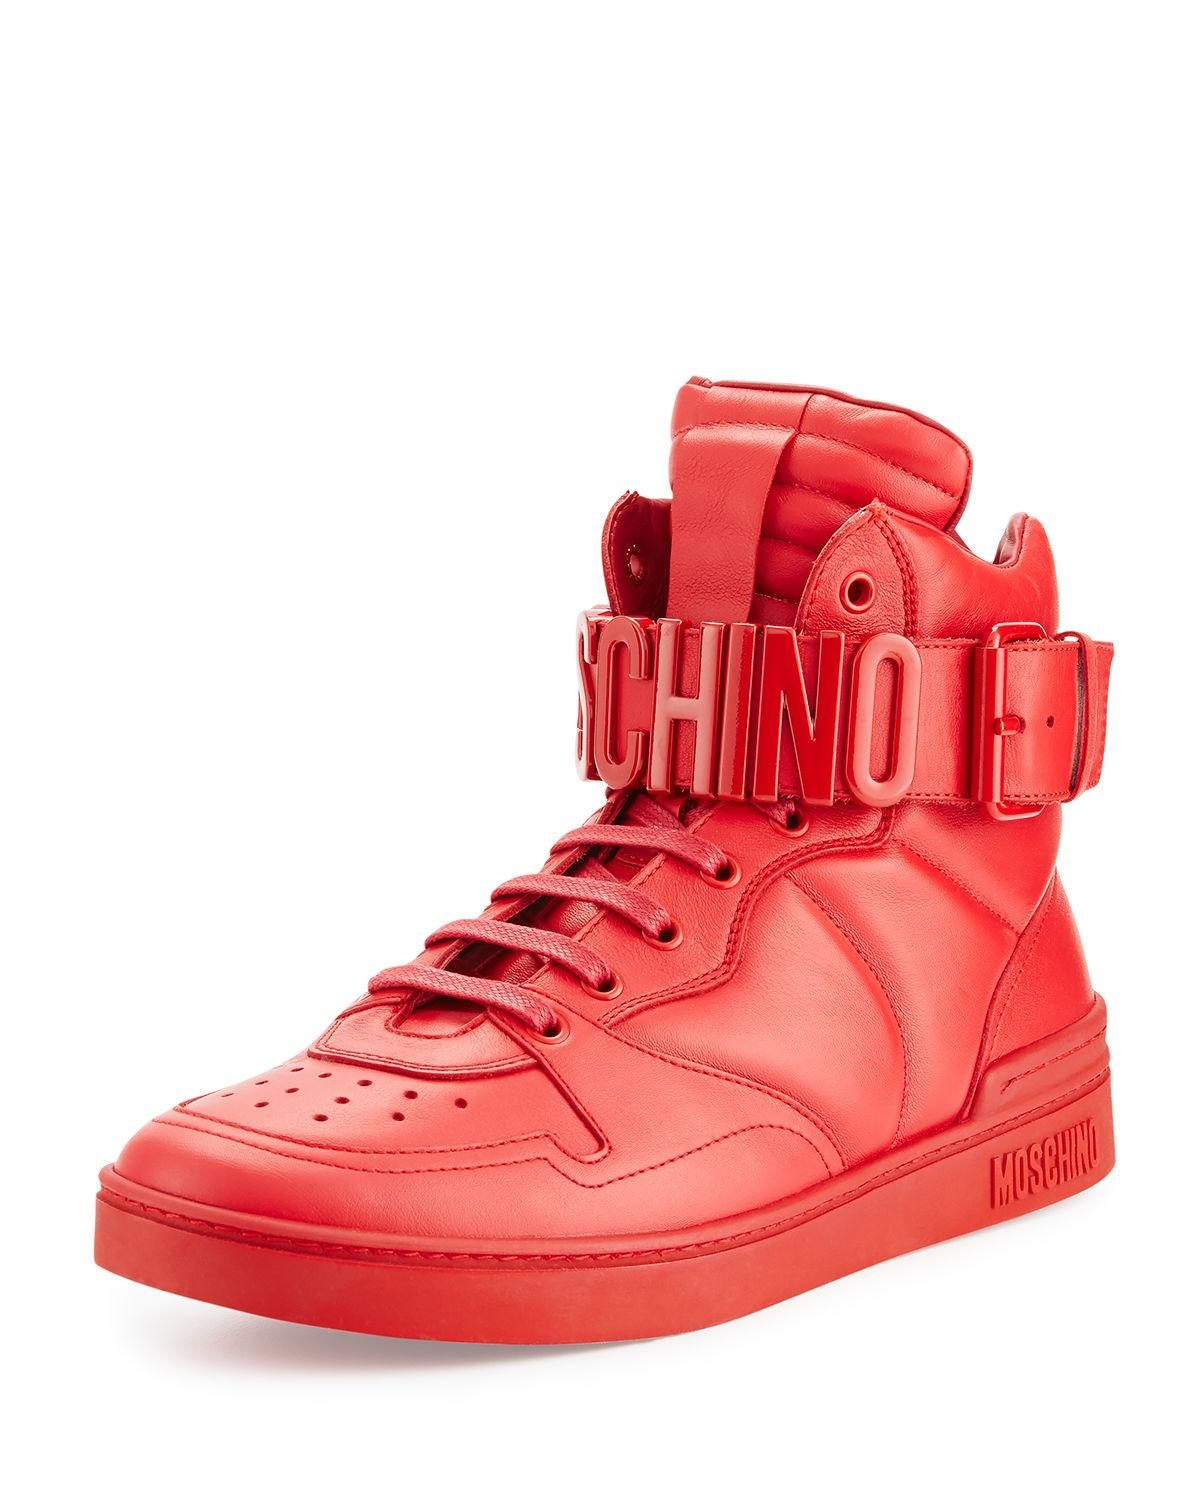 Moschino Leather High Top Sneaker With Logo Lettering In